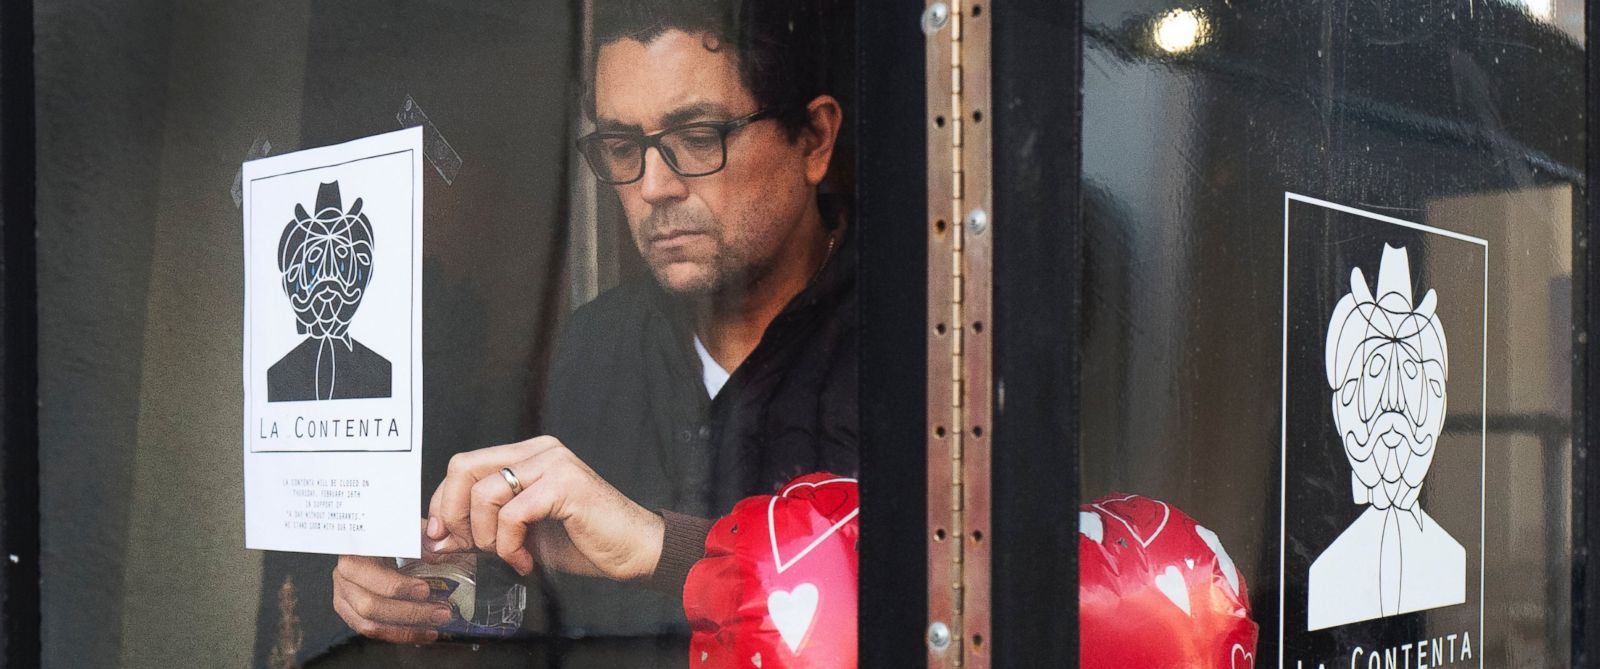 PHOTO: Luis Arce Mota, the chef and co-owner of La Contenta, posts a flyer in the window announcing the closure of his restaurant for the day, Feb. 16, 2017, in New York.